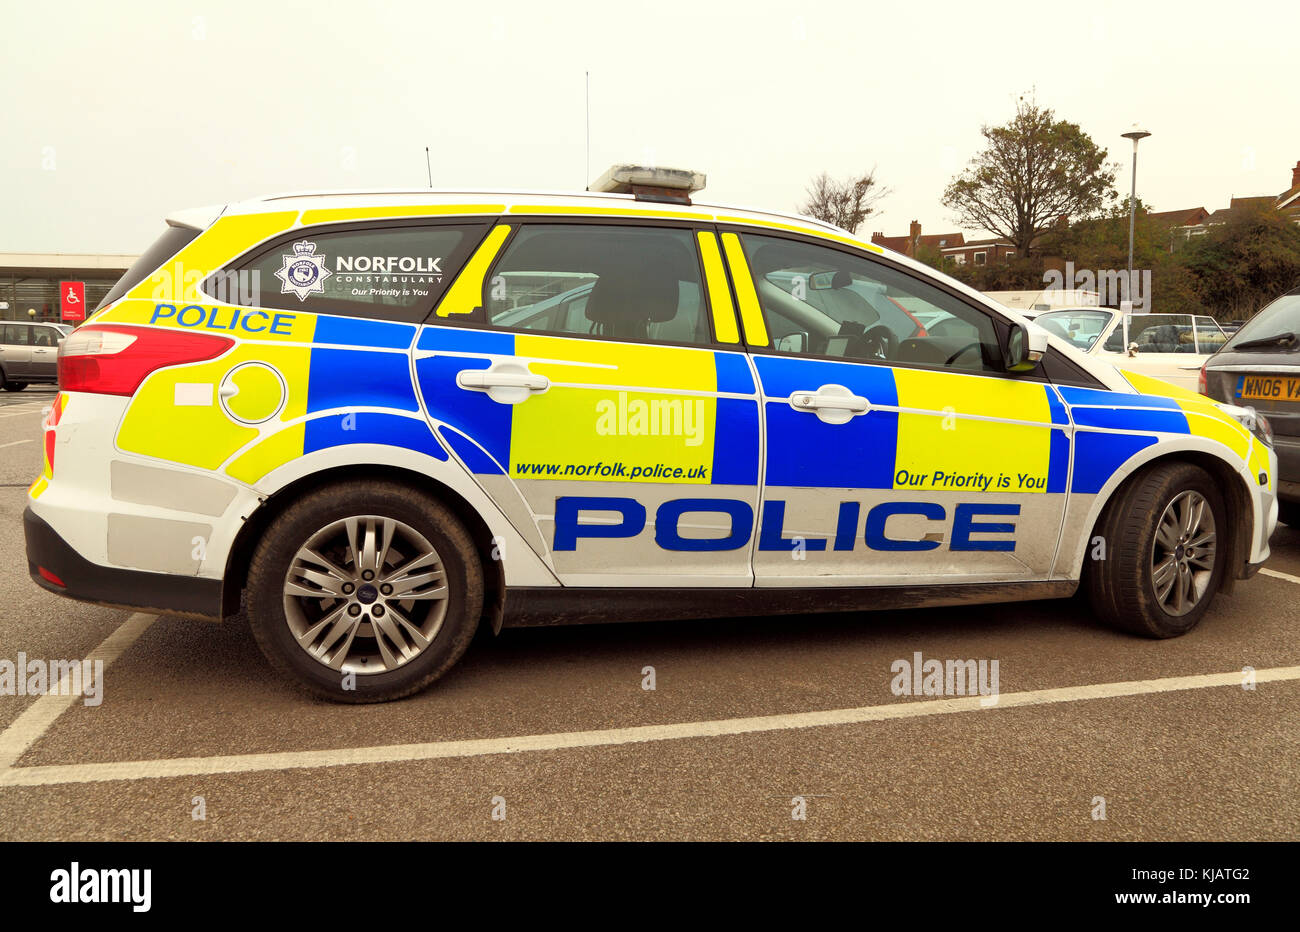 Norfolk Police, car, vehicle, constabulary, police force, forces, vehicles, cars, logo - Stock Image